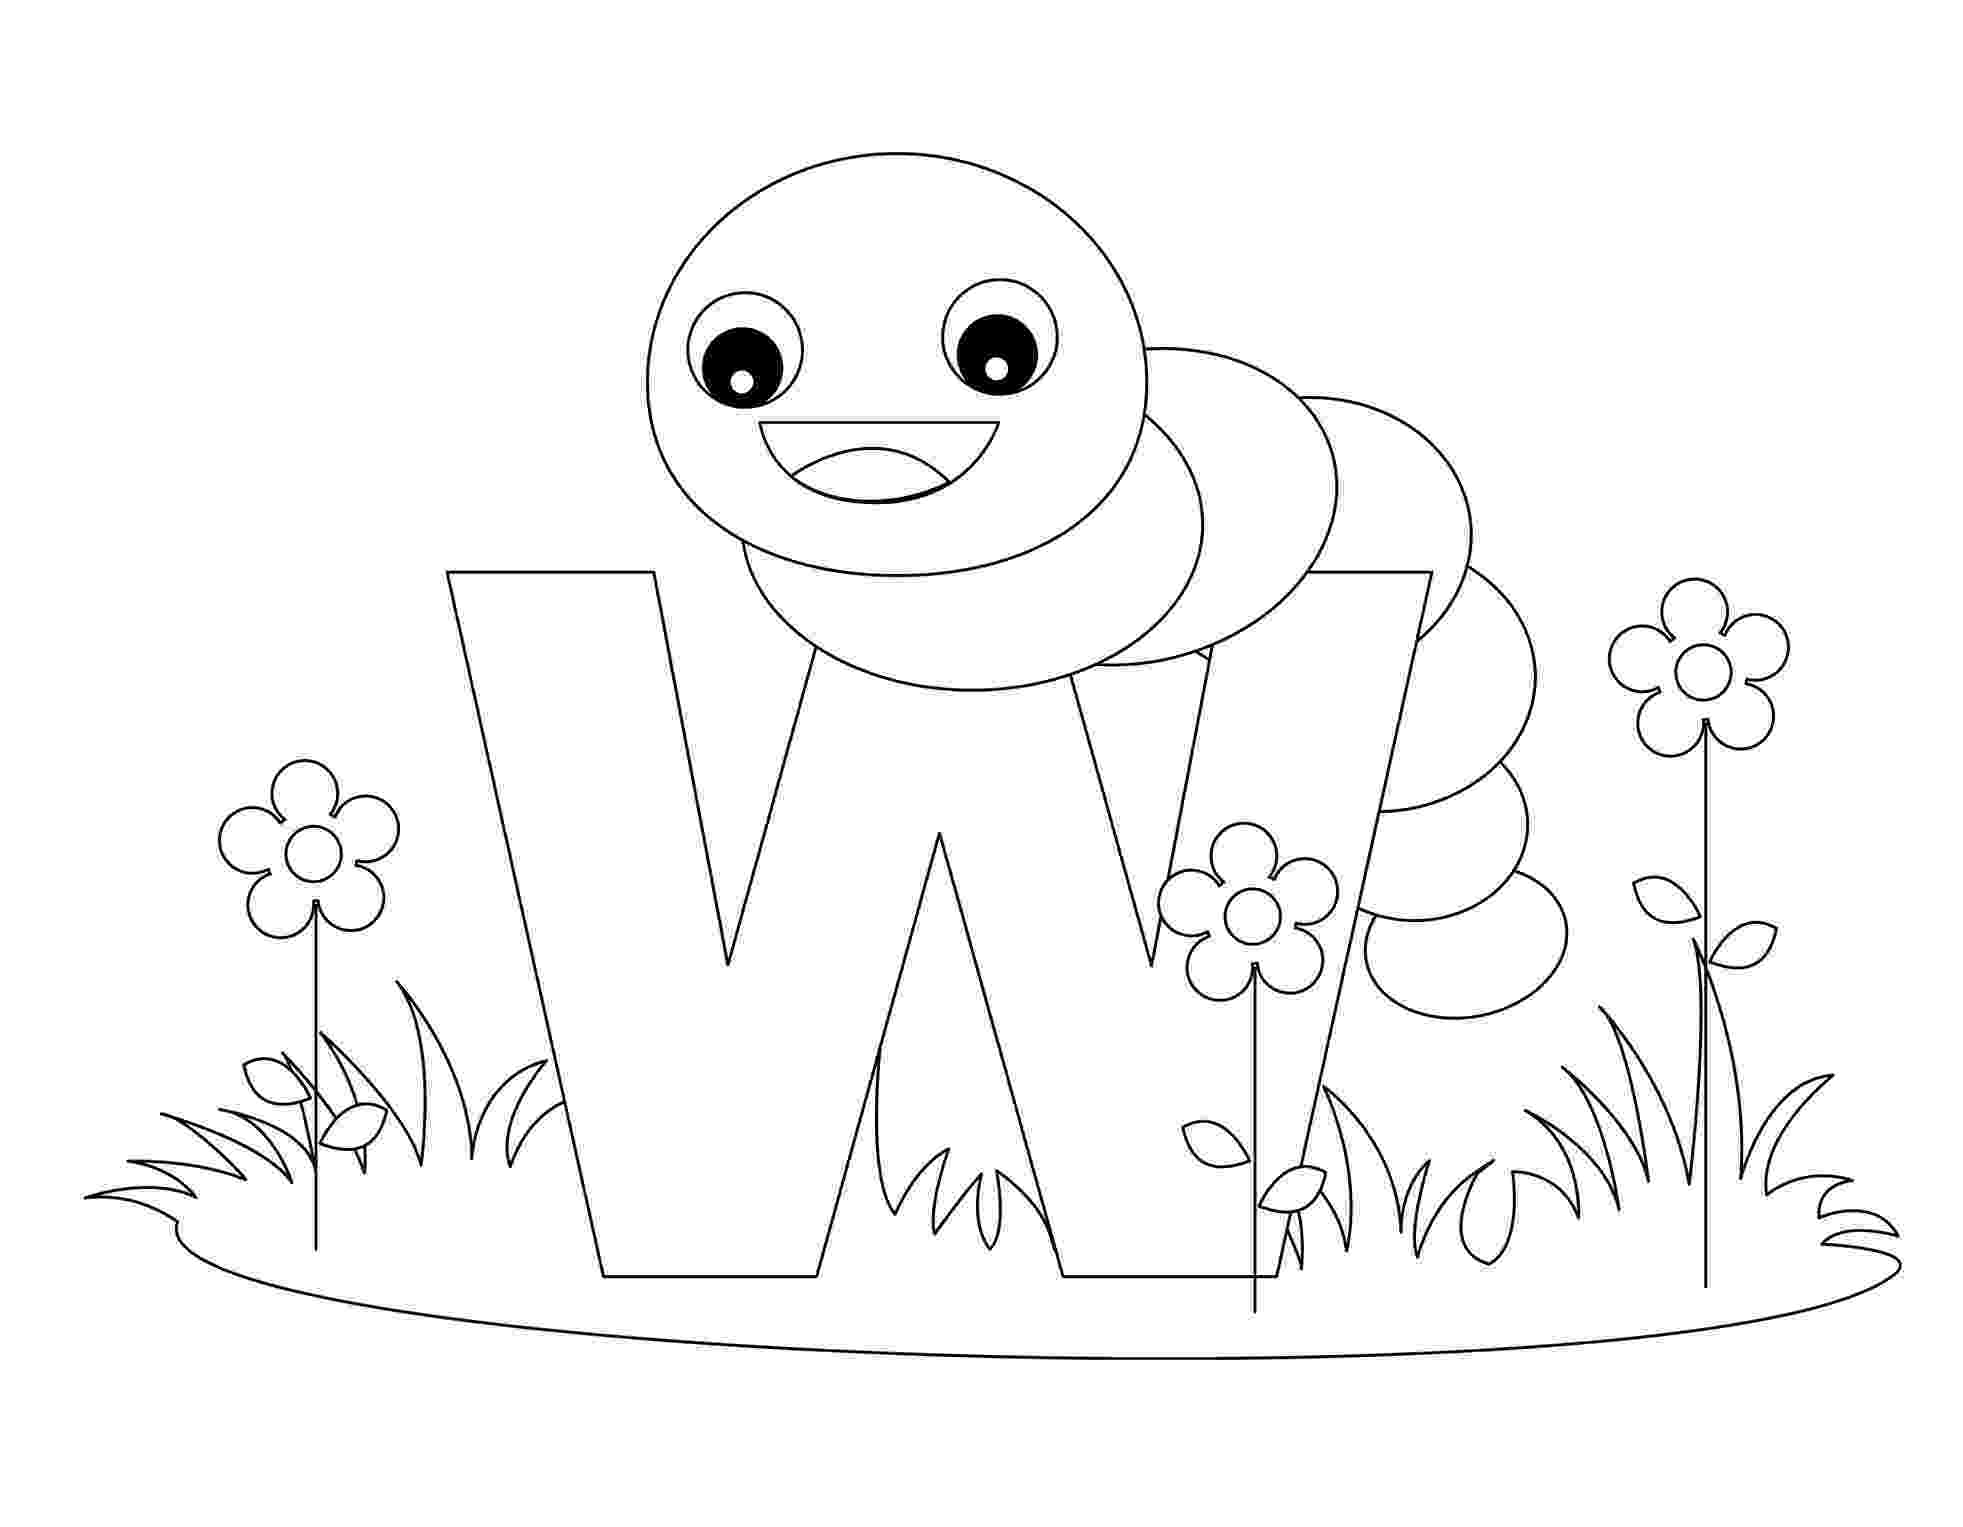 abc coloring book printable free printable alphabet coloring pages for kids best printable abc book coloring 1 1